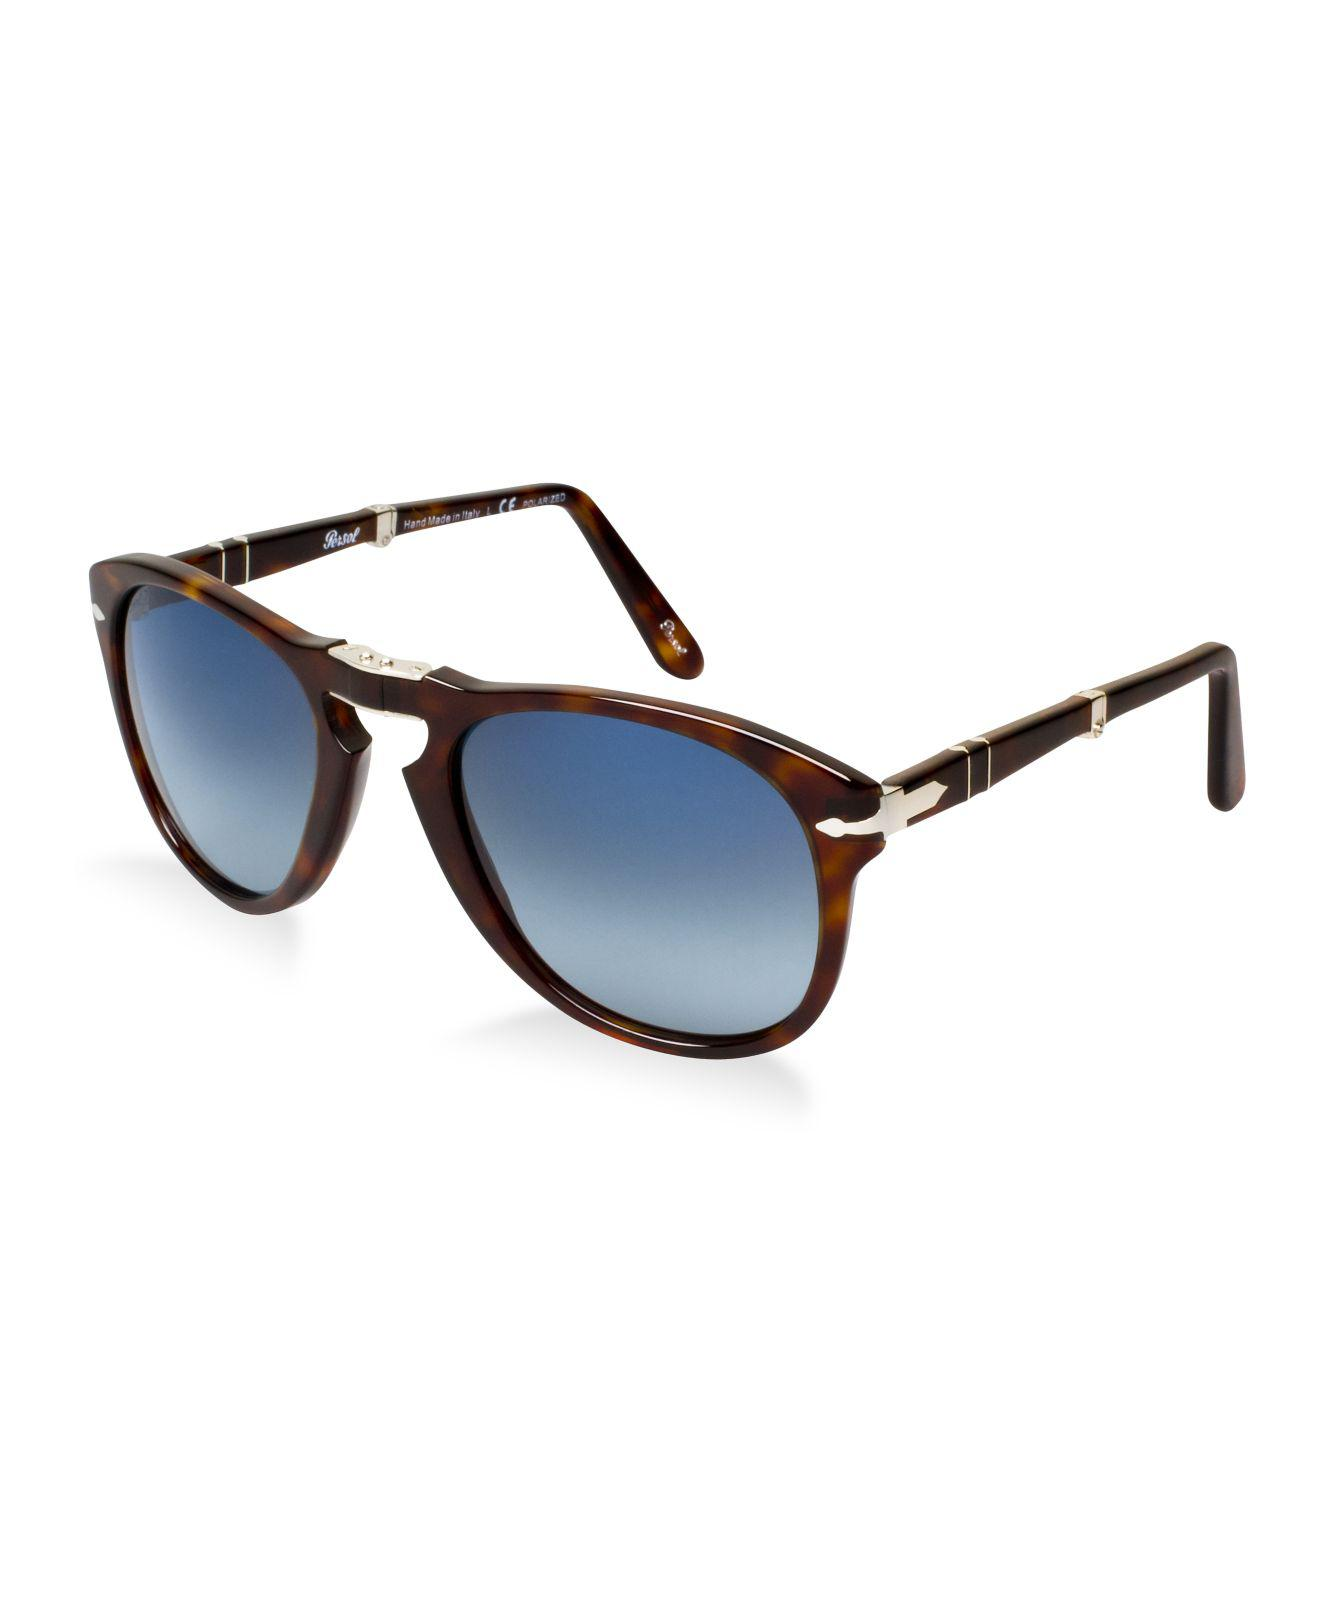 3239b75047 Lyst - Persol Po0714 52 in Brown for Men - Save 31.025641025641022%